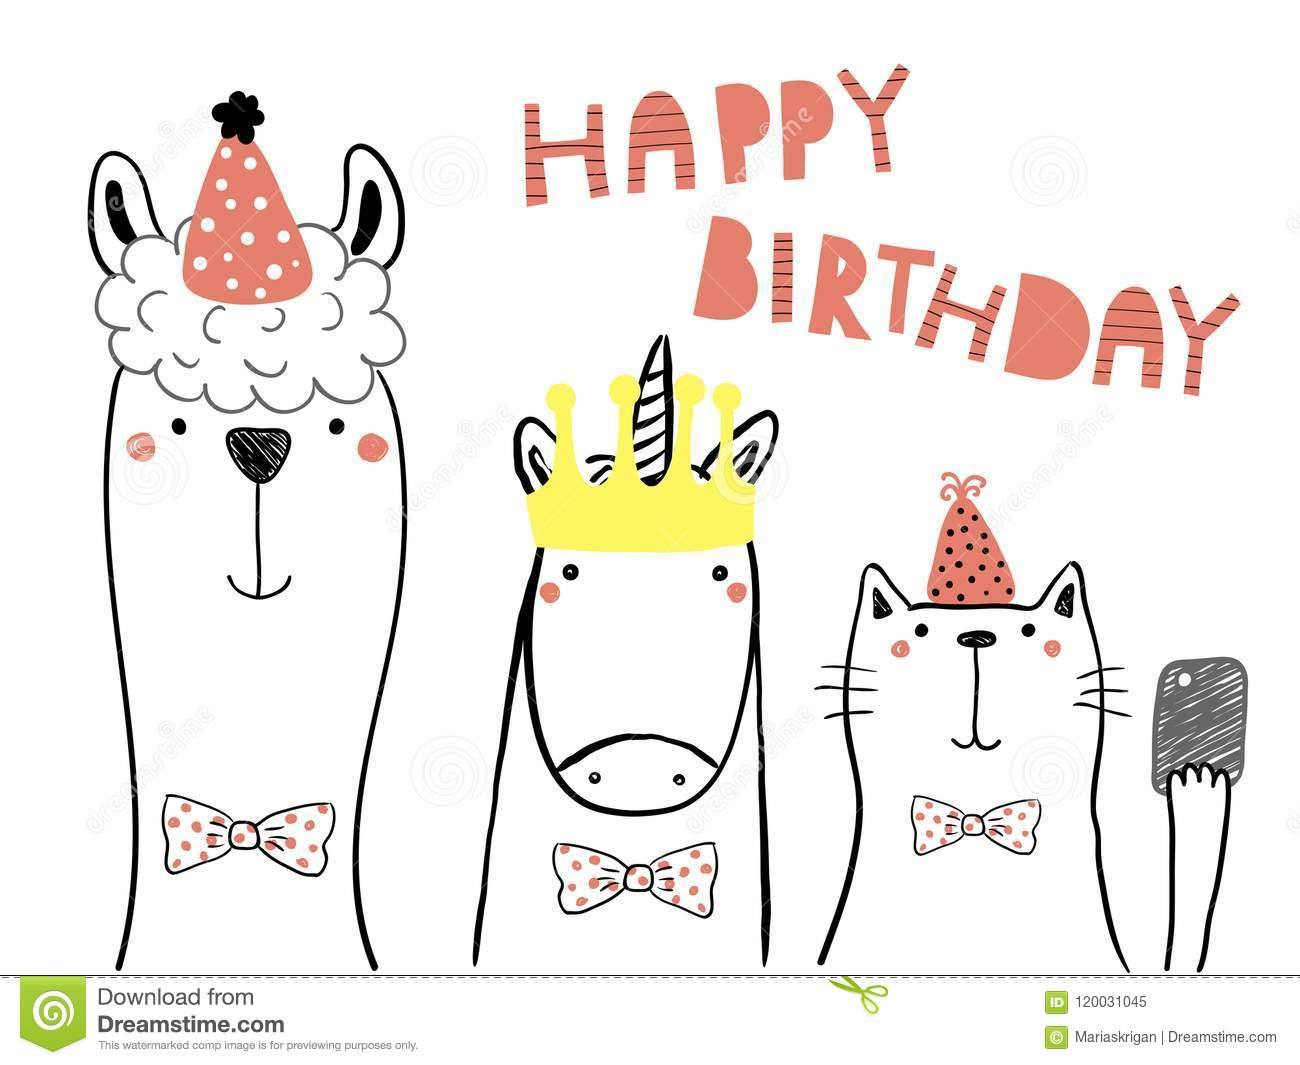 Hand Drawn Birthday Card With Cute Funny Llama Unicorn Cat In Party Hats Taking Selfie A Smart Phonequote Isolated Objects Line Drawing